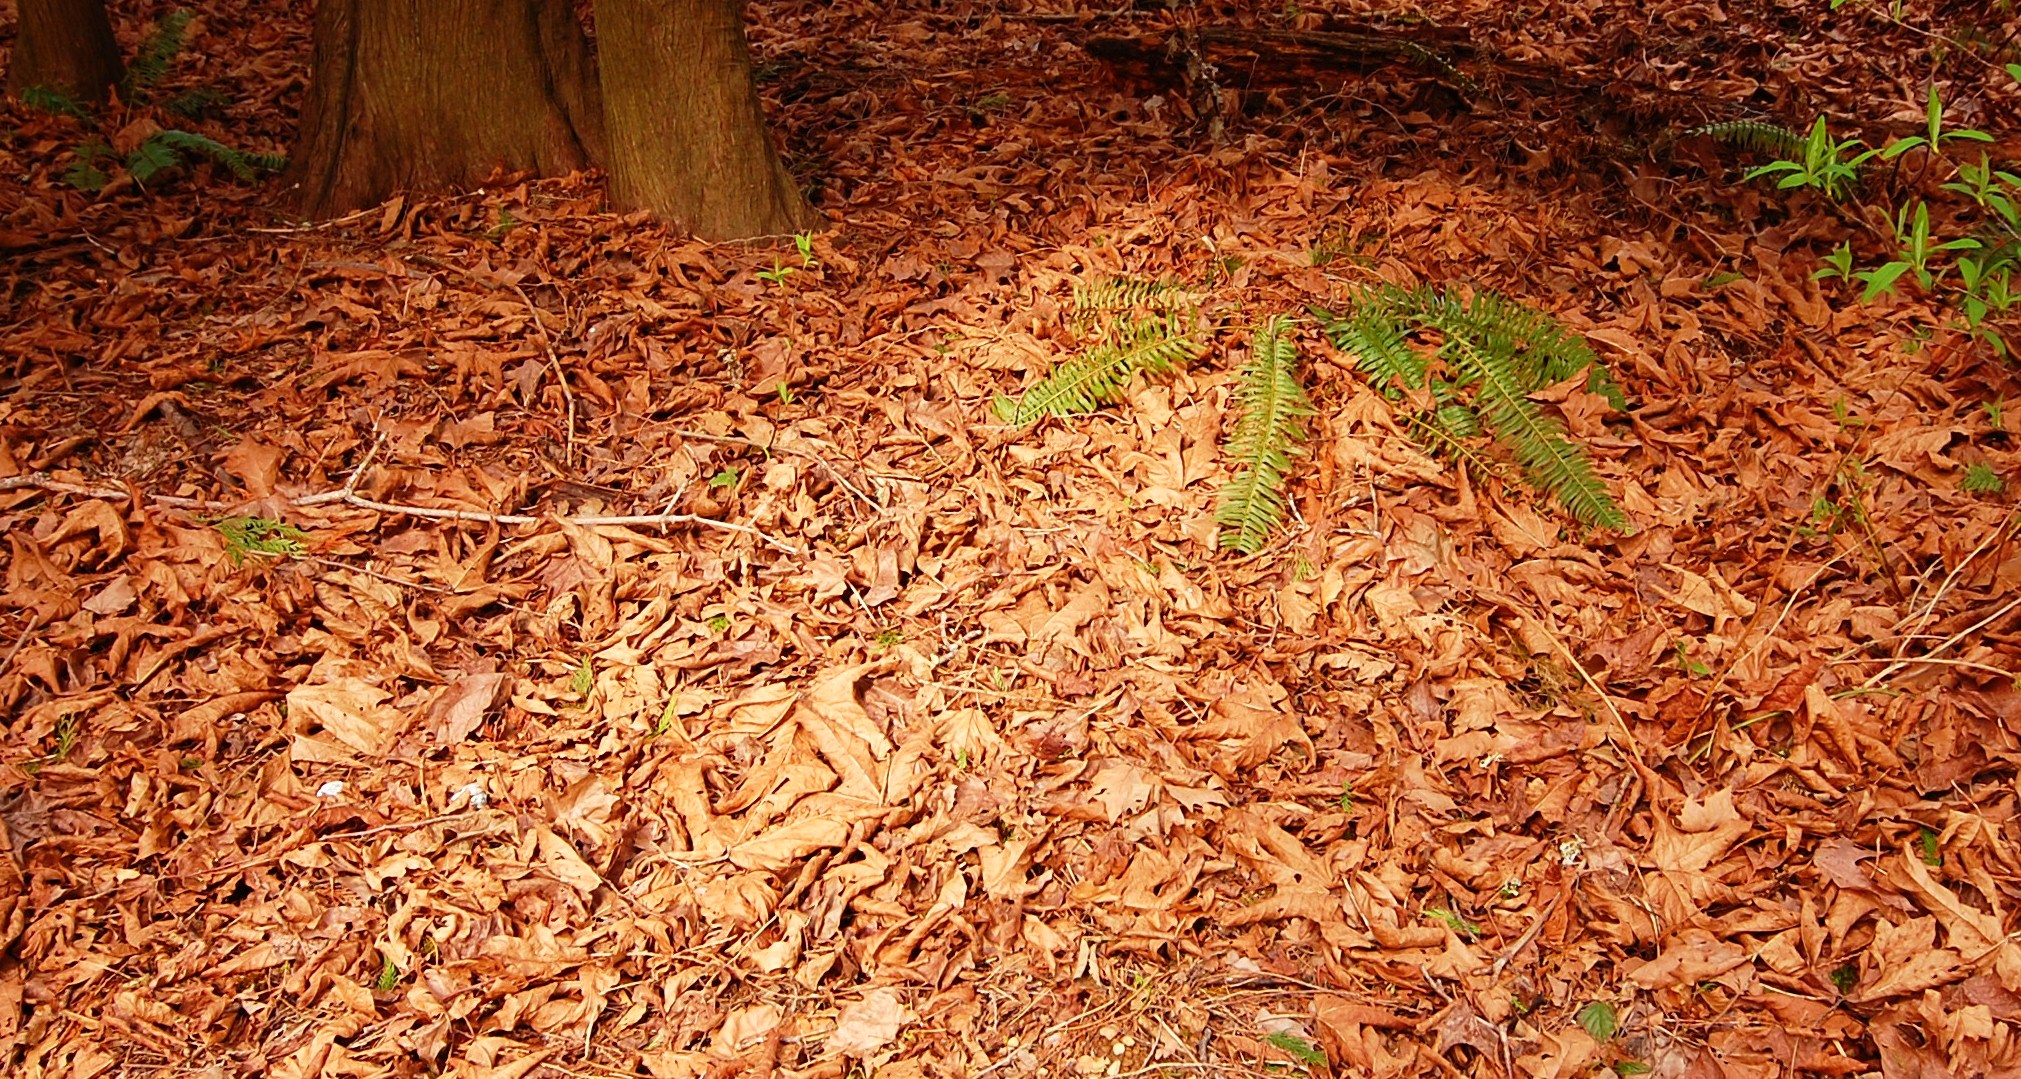 Dried orange maple leaves in a forest clearing.